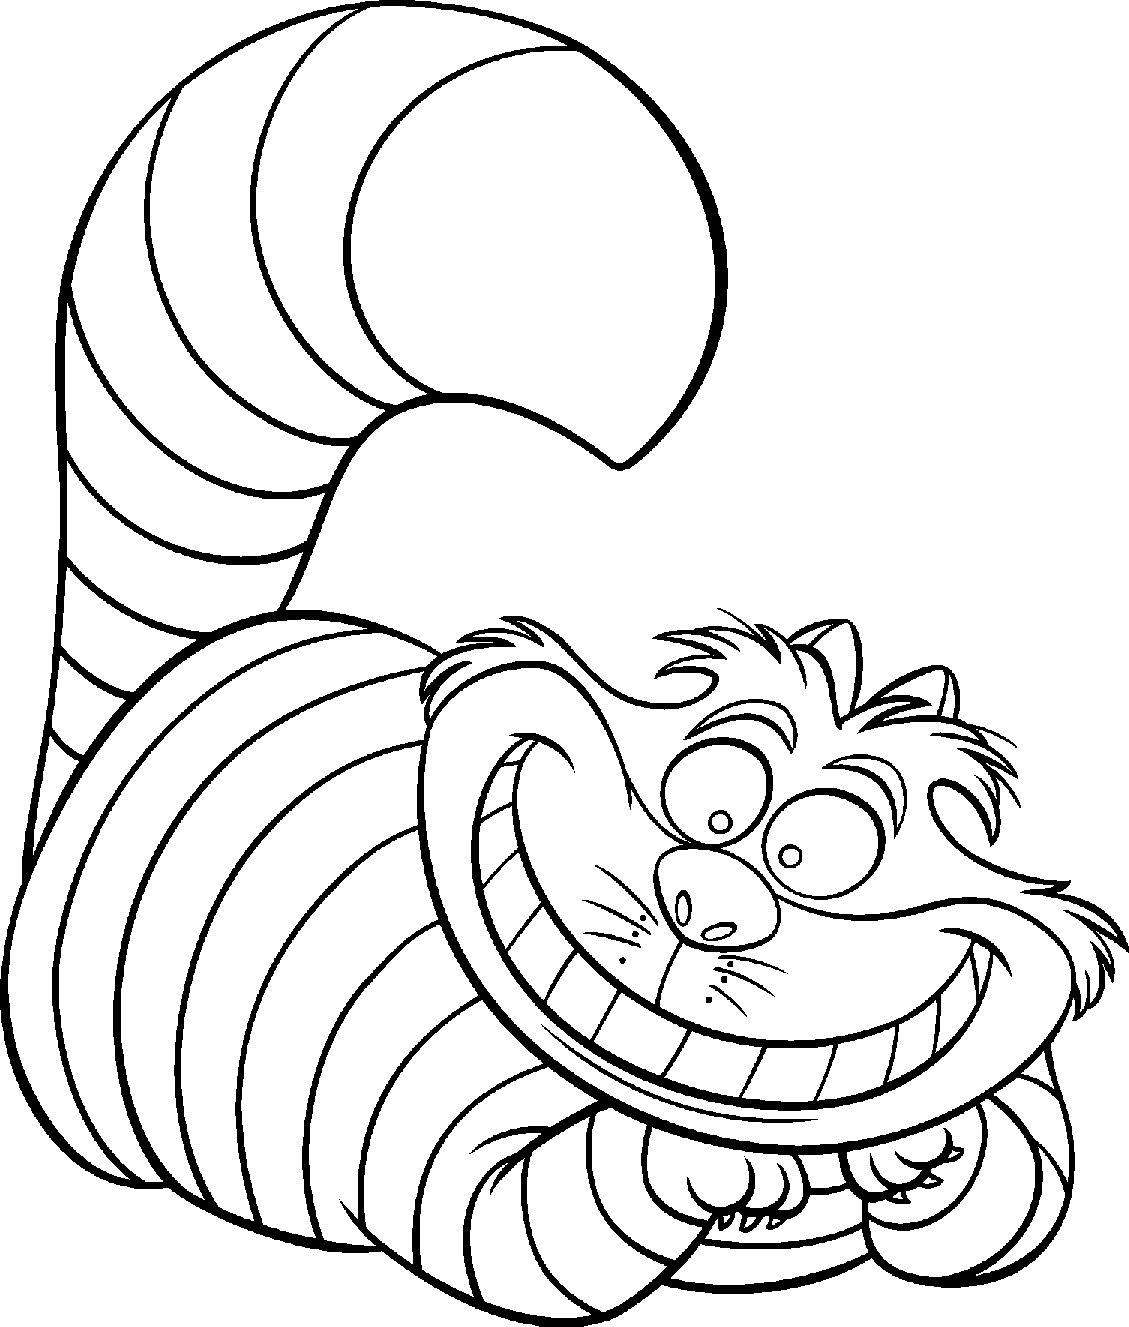 1129x1327 Best Of Images Alice Wonderland Coloring Pages Free